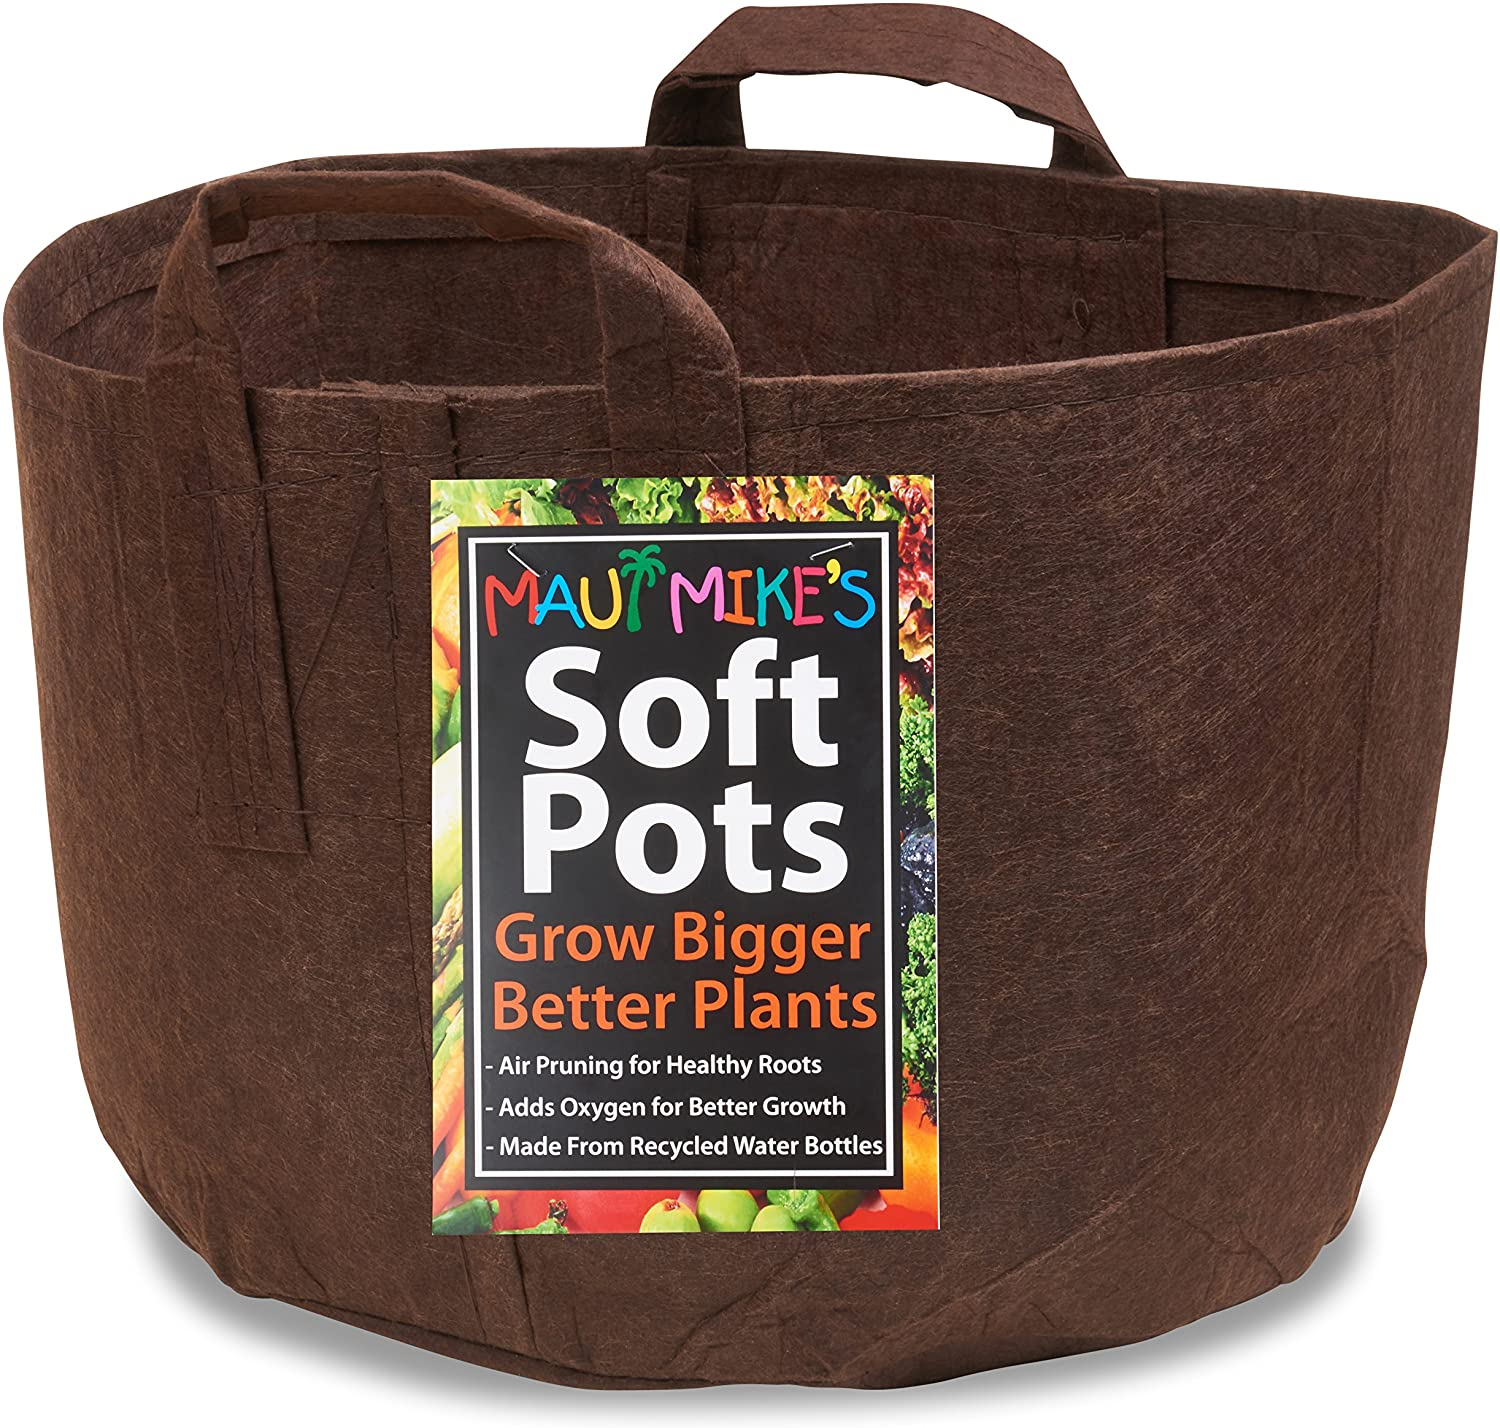 Soft POTS 3 Gallon 5 Pack Best Aeration Fabric Garden Pots from Maui Mike s. Thicker Hemp Material and Recycled from Plastic Water Bottles. Eco Friendly.